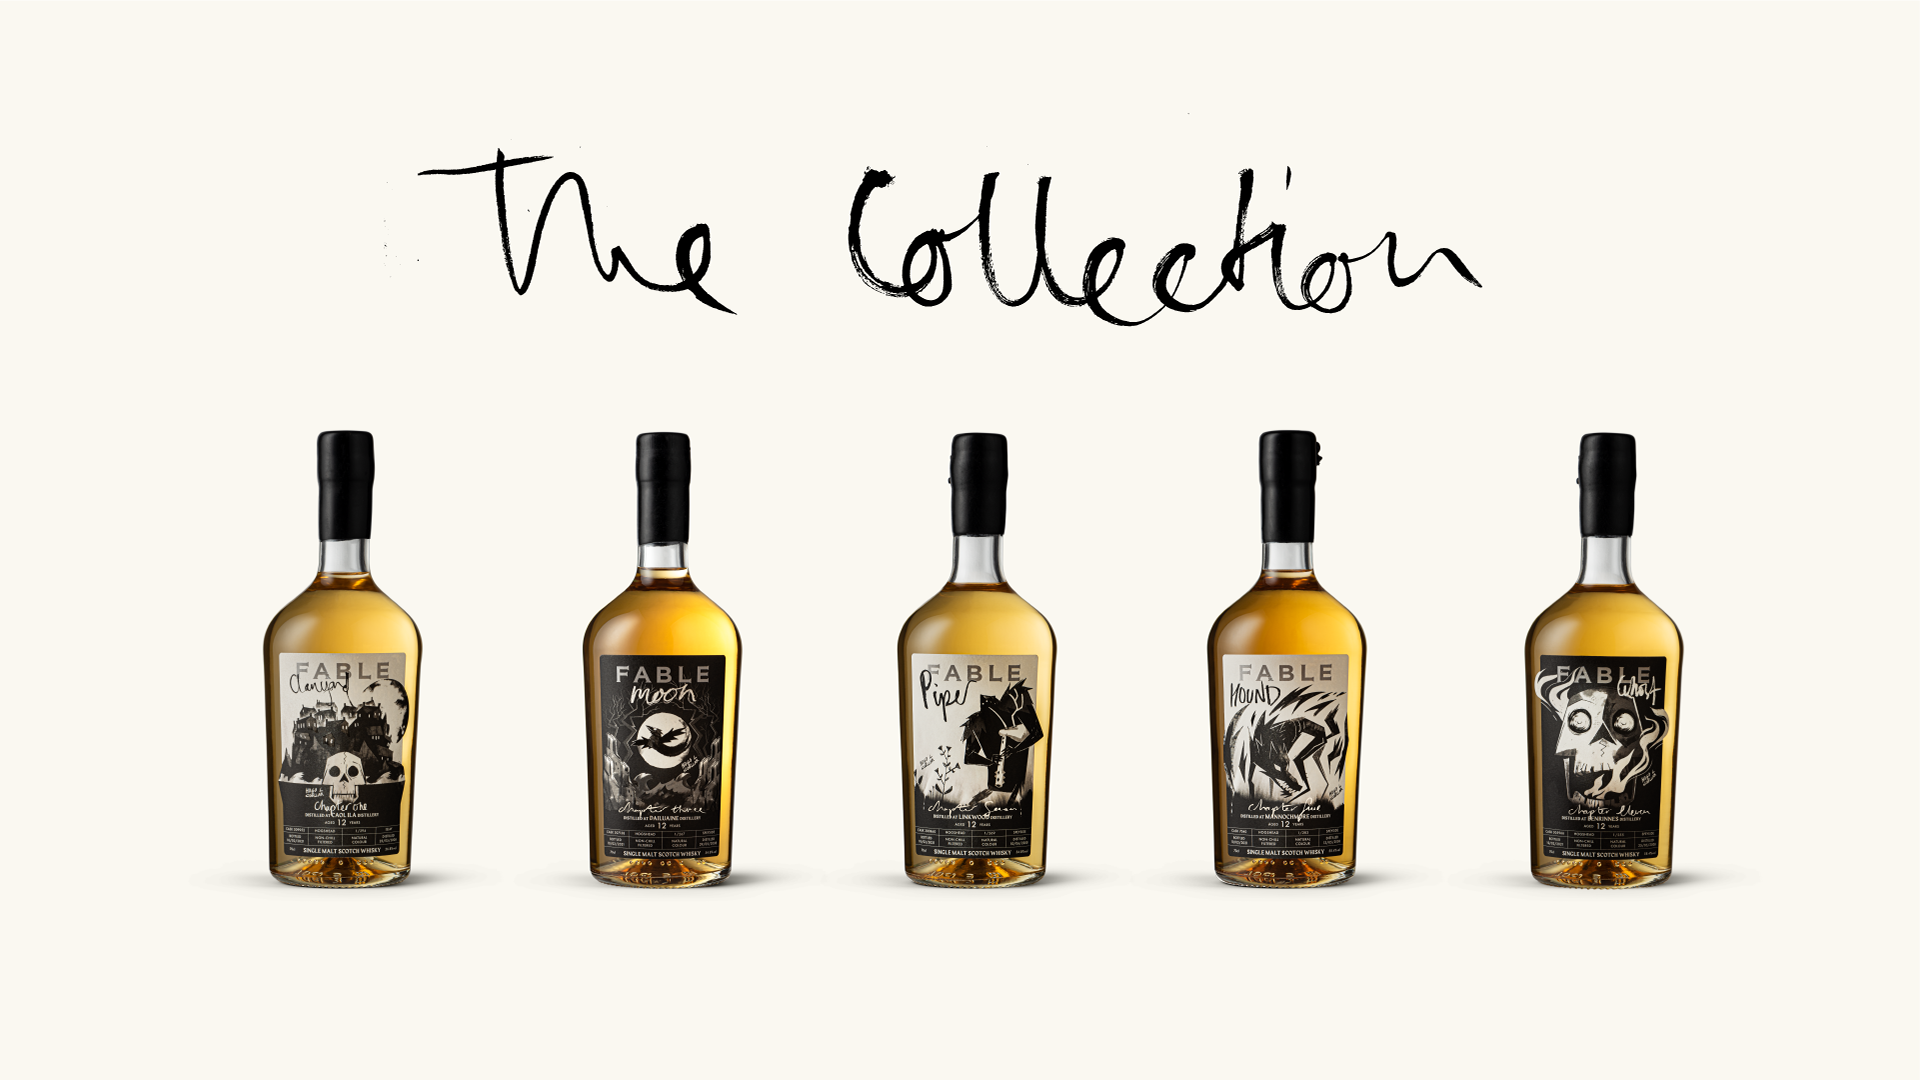 Fable Whisky Brand to Capture New Imaginations – Designed by gpstudio